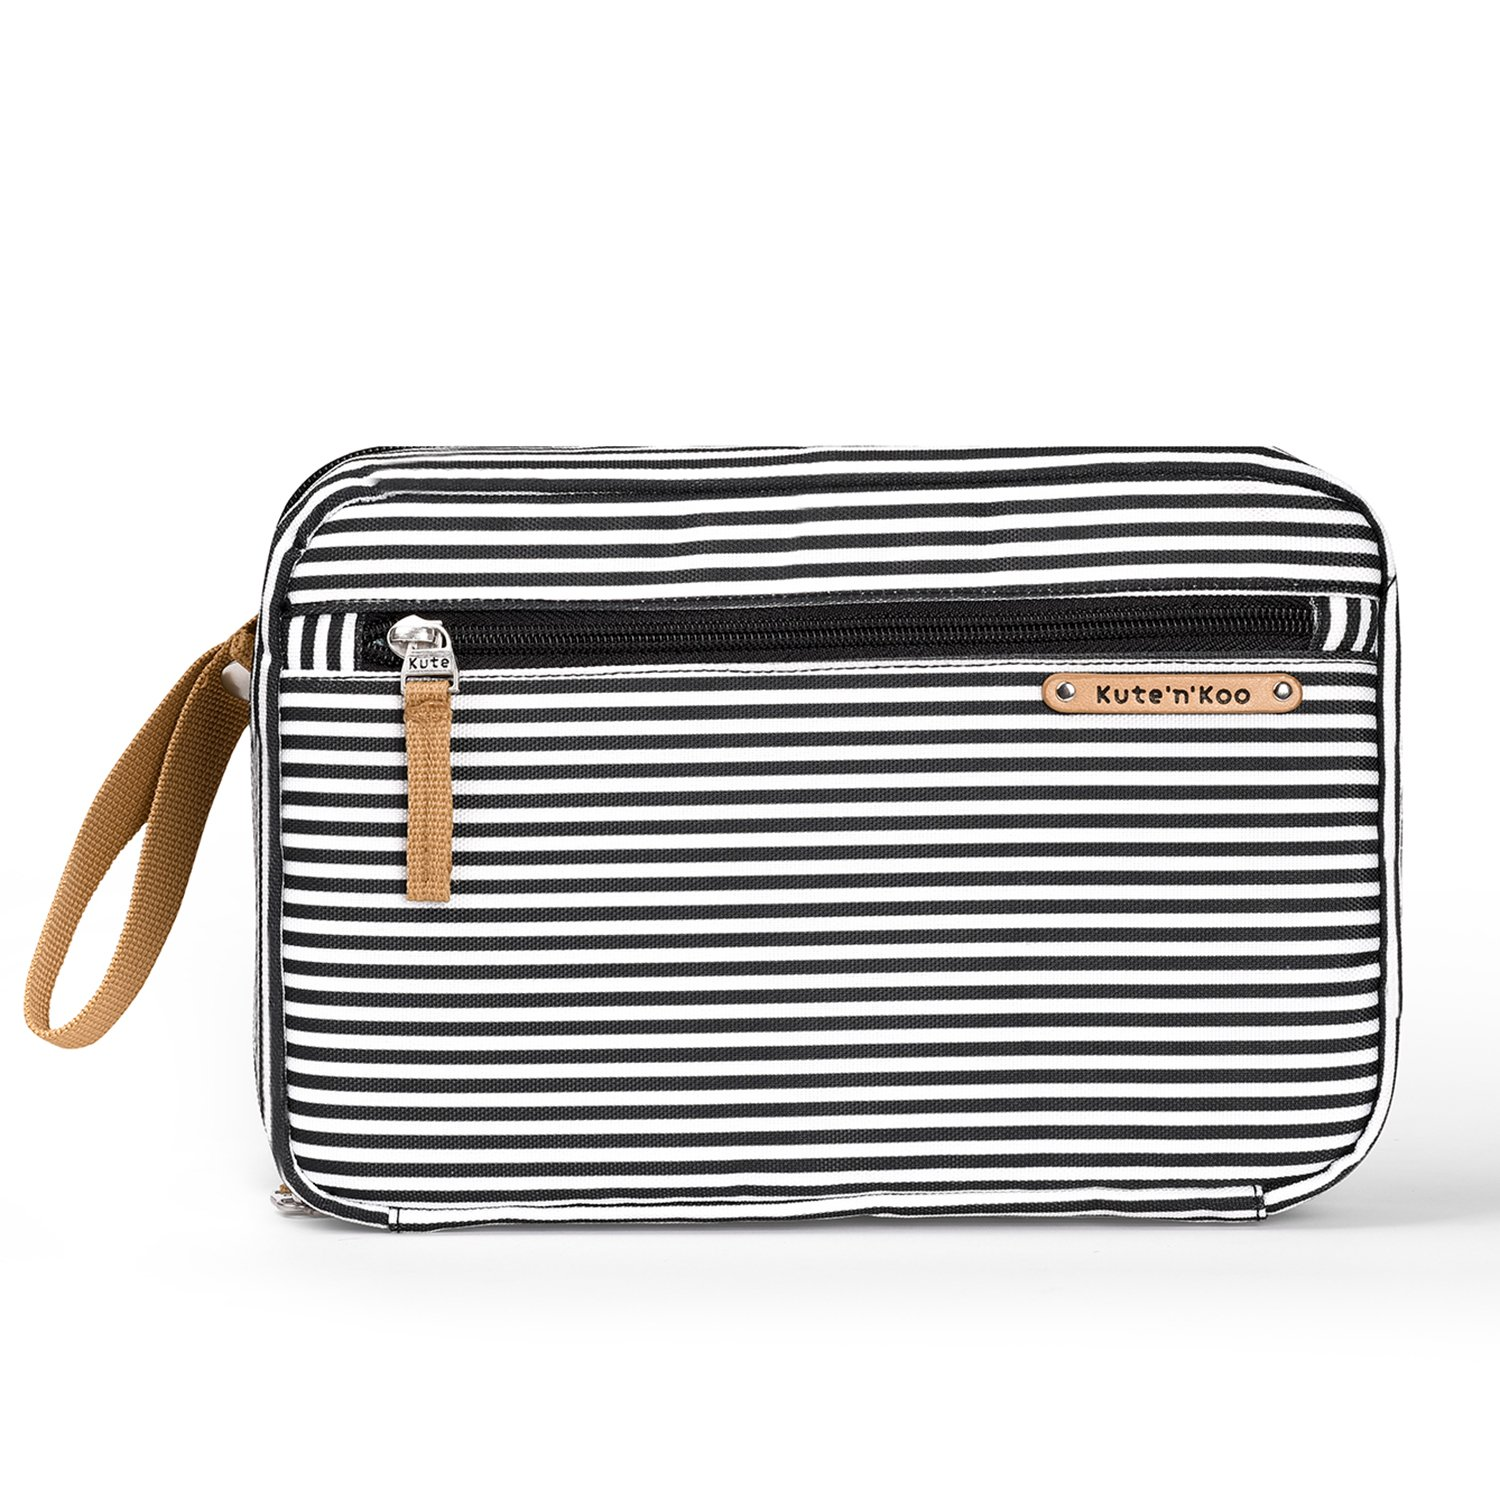 Stylish Portable Diaper Changing Pad – Diaper Clutch Bag - by Kute 'n' Koo – Fashion and Function in One Bag – Designed in NYC and Much More …(black and white french stripe) Kute 'n' Koo kk1006